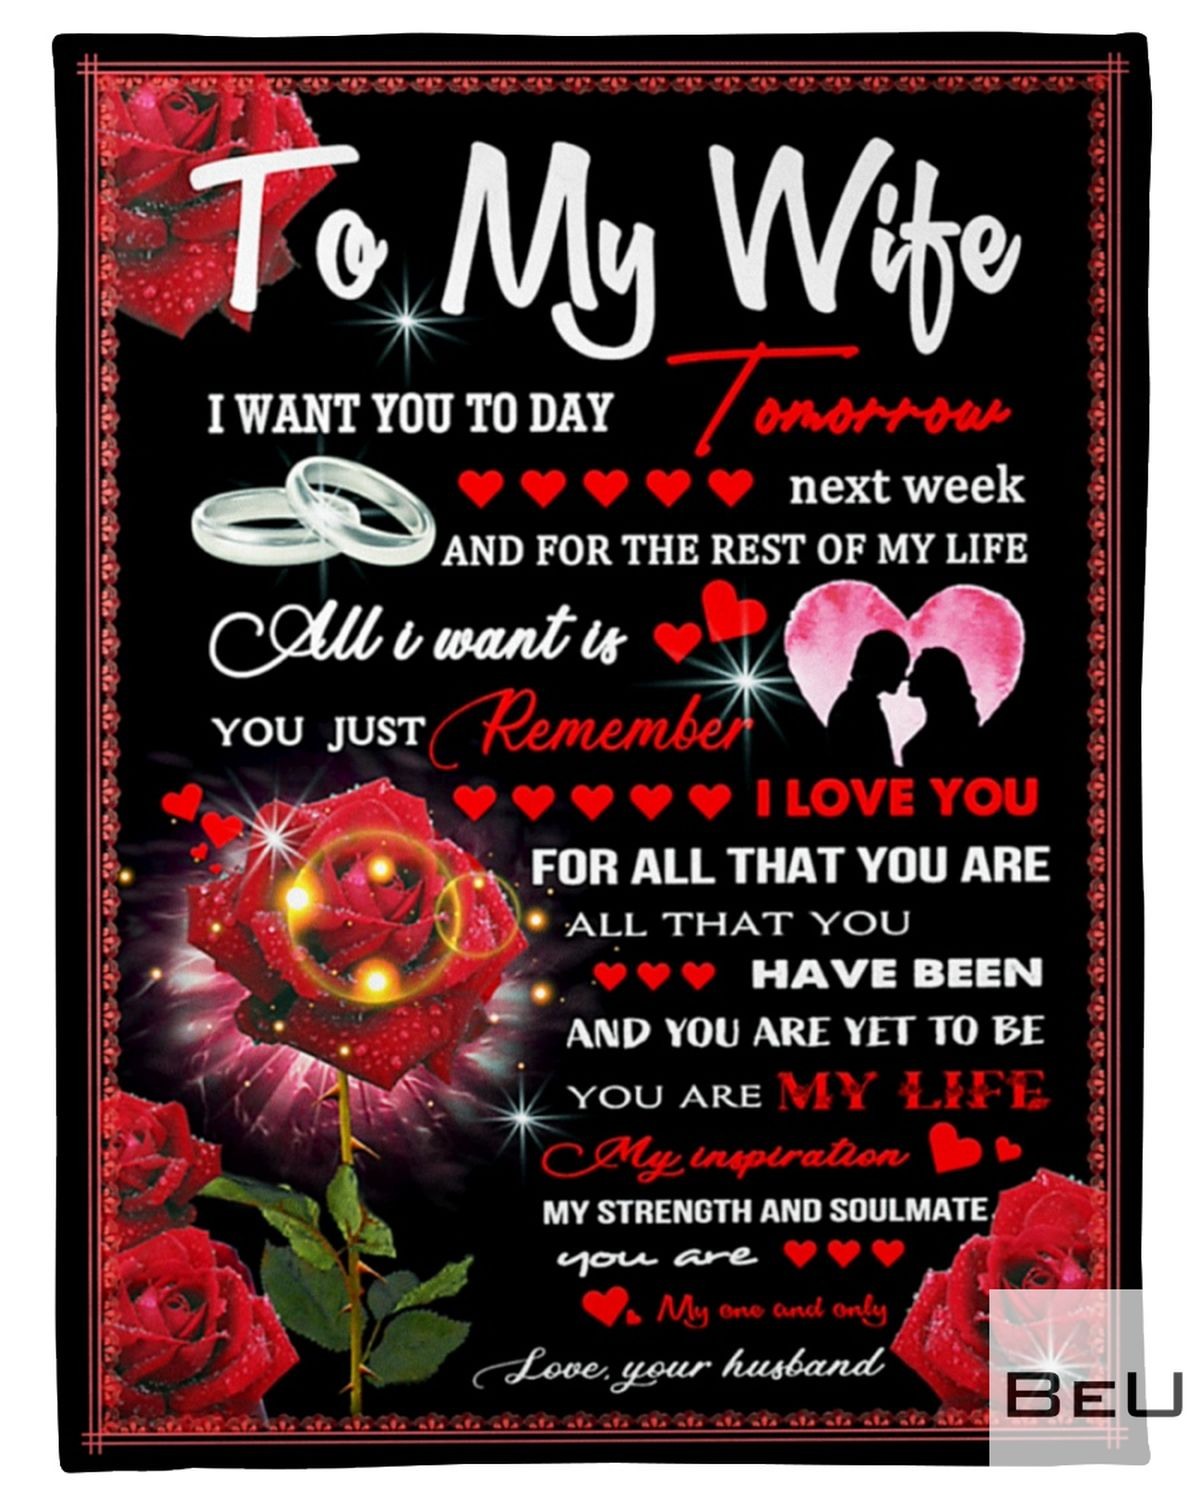 To my wife I want you today tomorrow next week and for the rest of my life All I want is you just remember I love you fleece blanket